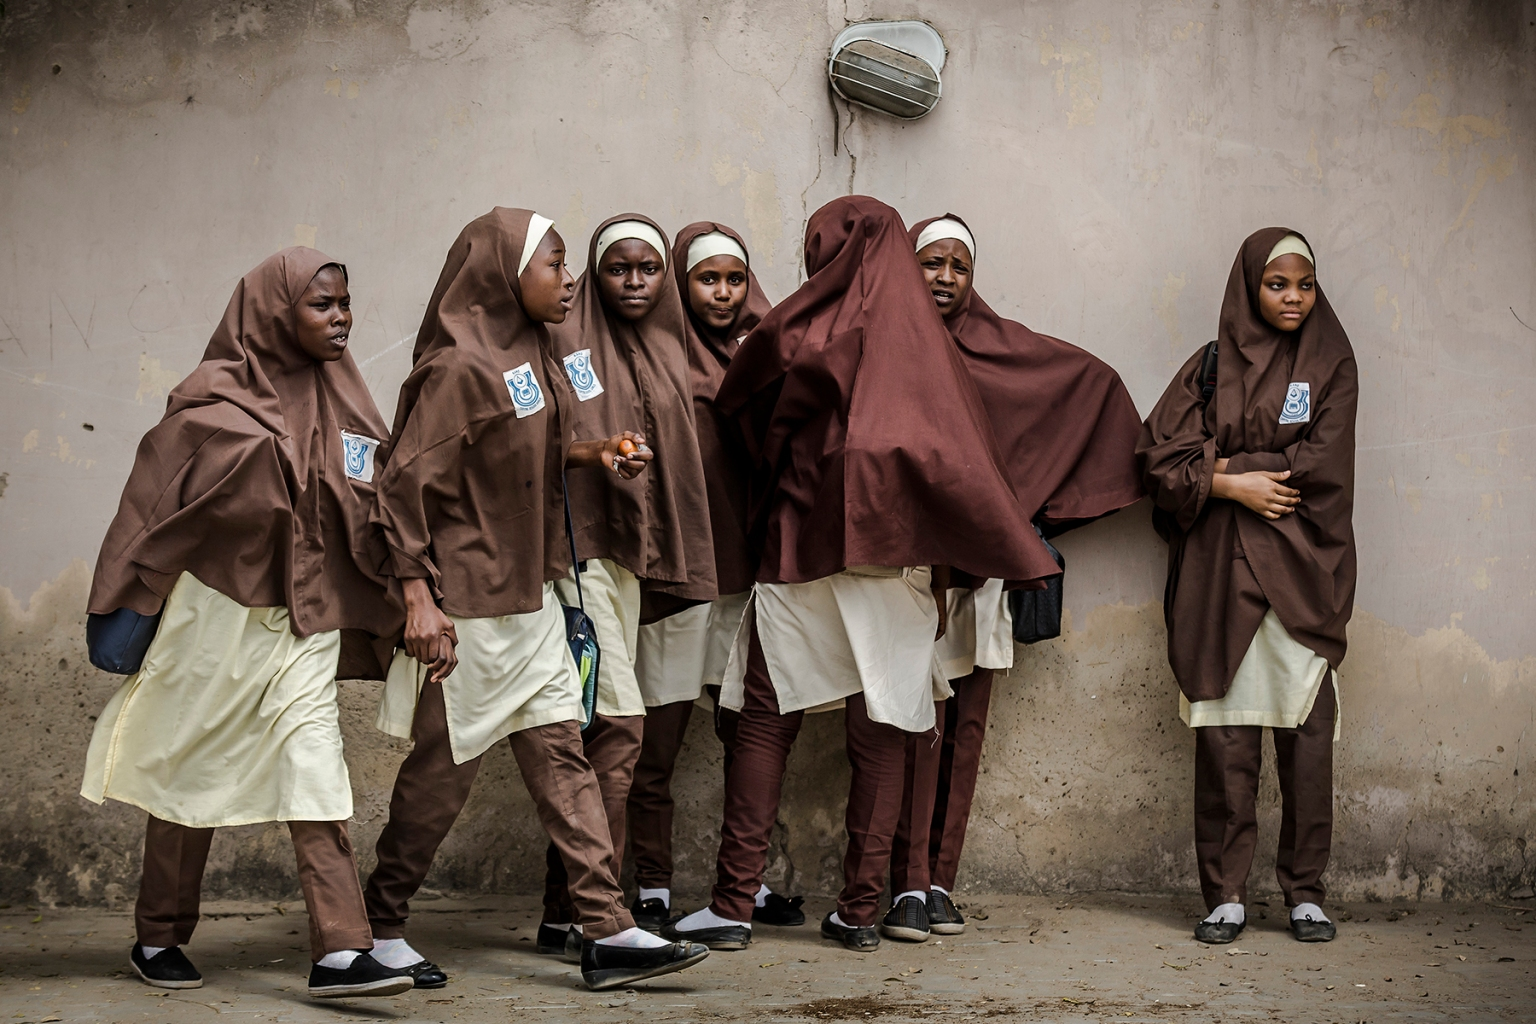 A group of girls leave their school during a rally by All Progressives Congress party supporters celebrating the re-election of the incumbent president and the leader of party in Kano, Nigeria, on Feb. 27. (Luis Tato/AFP/Getty Images)